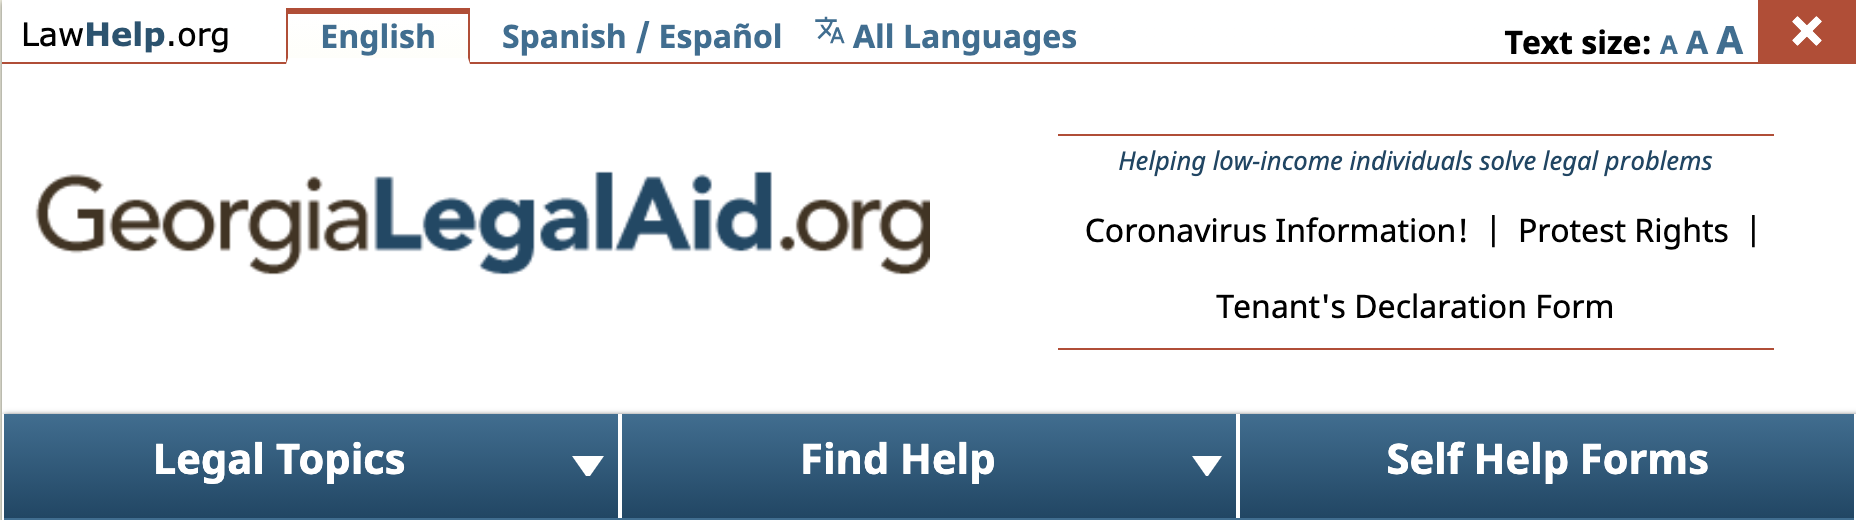 Georgia Legal Aid's website includes a banner section at the top of their website with a link to an FAQ page for coronavirus information